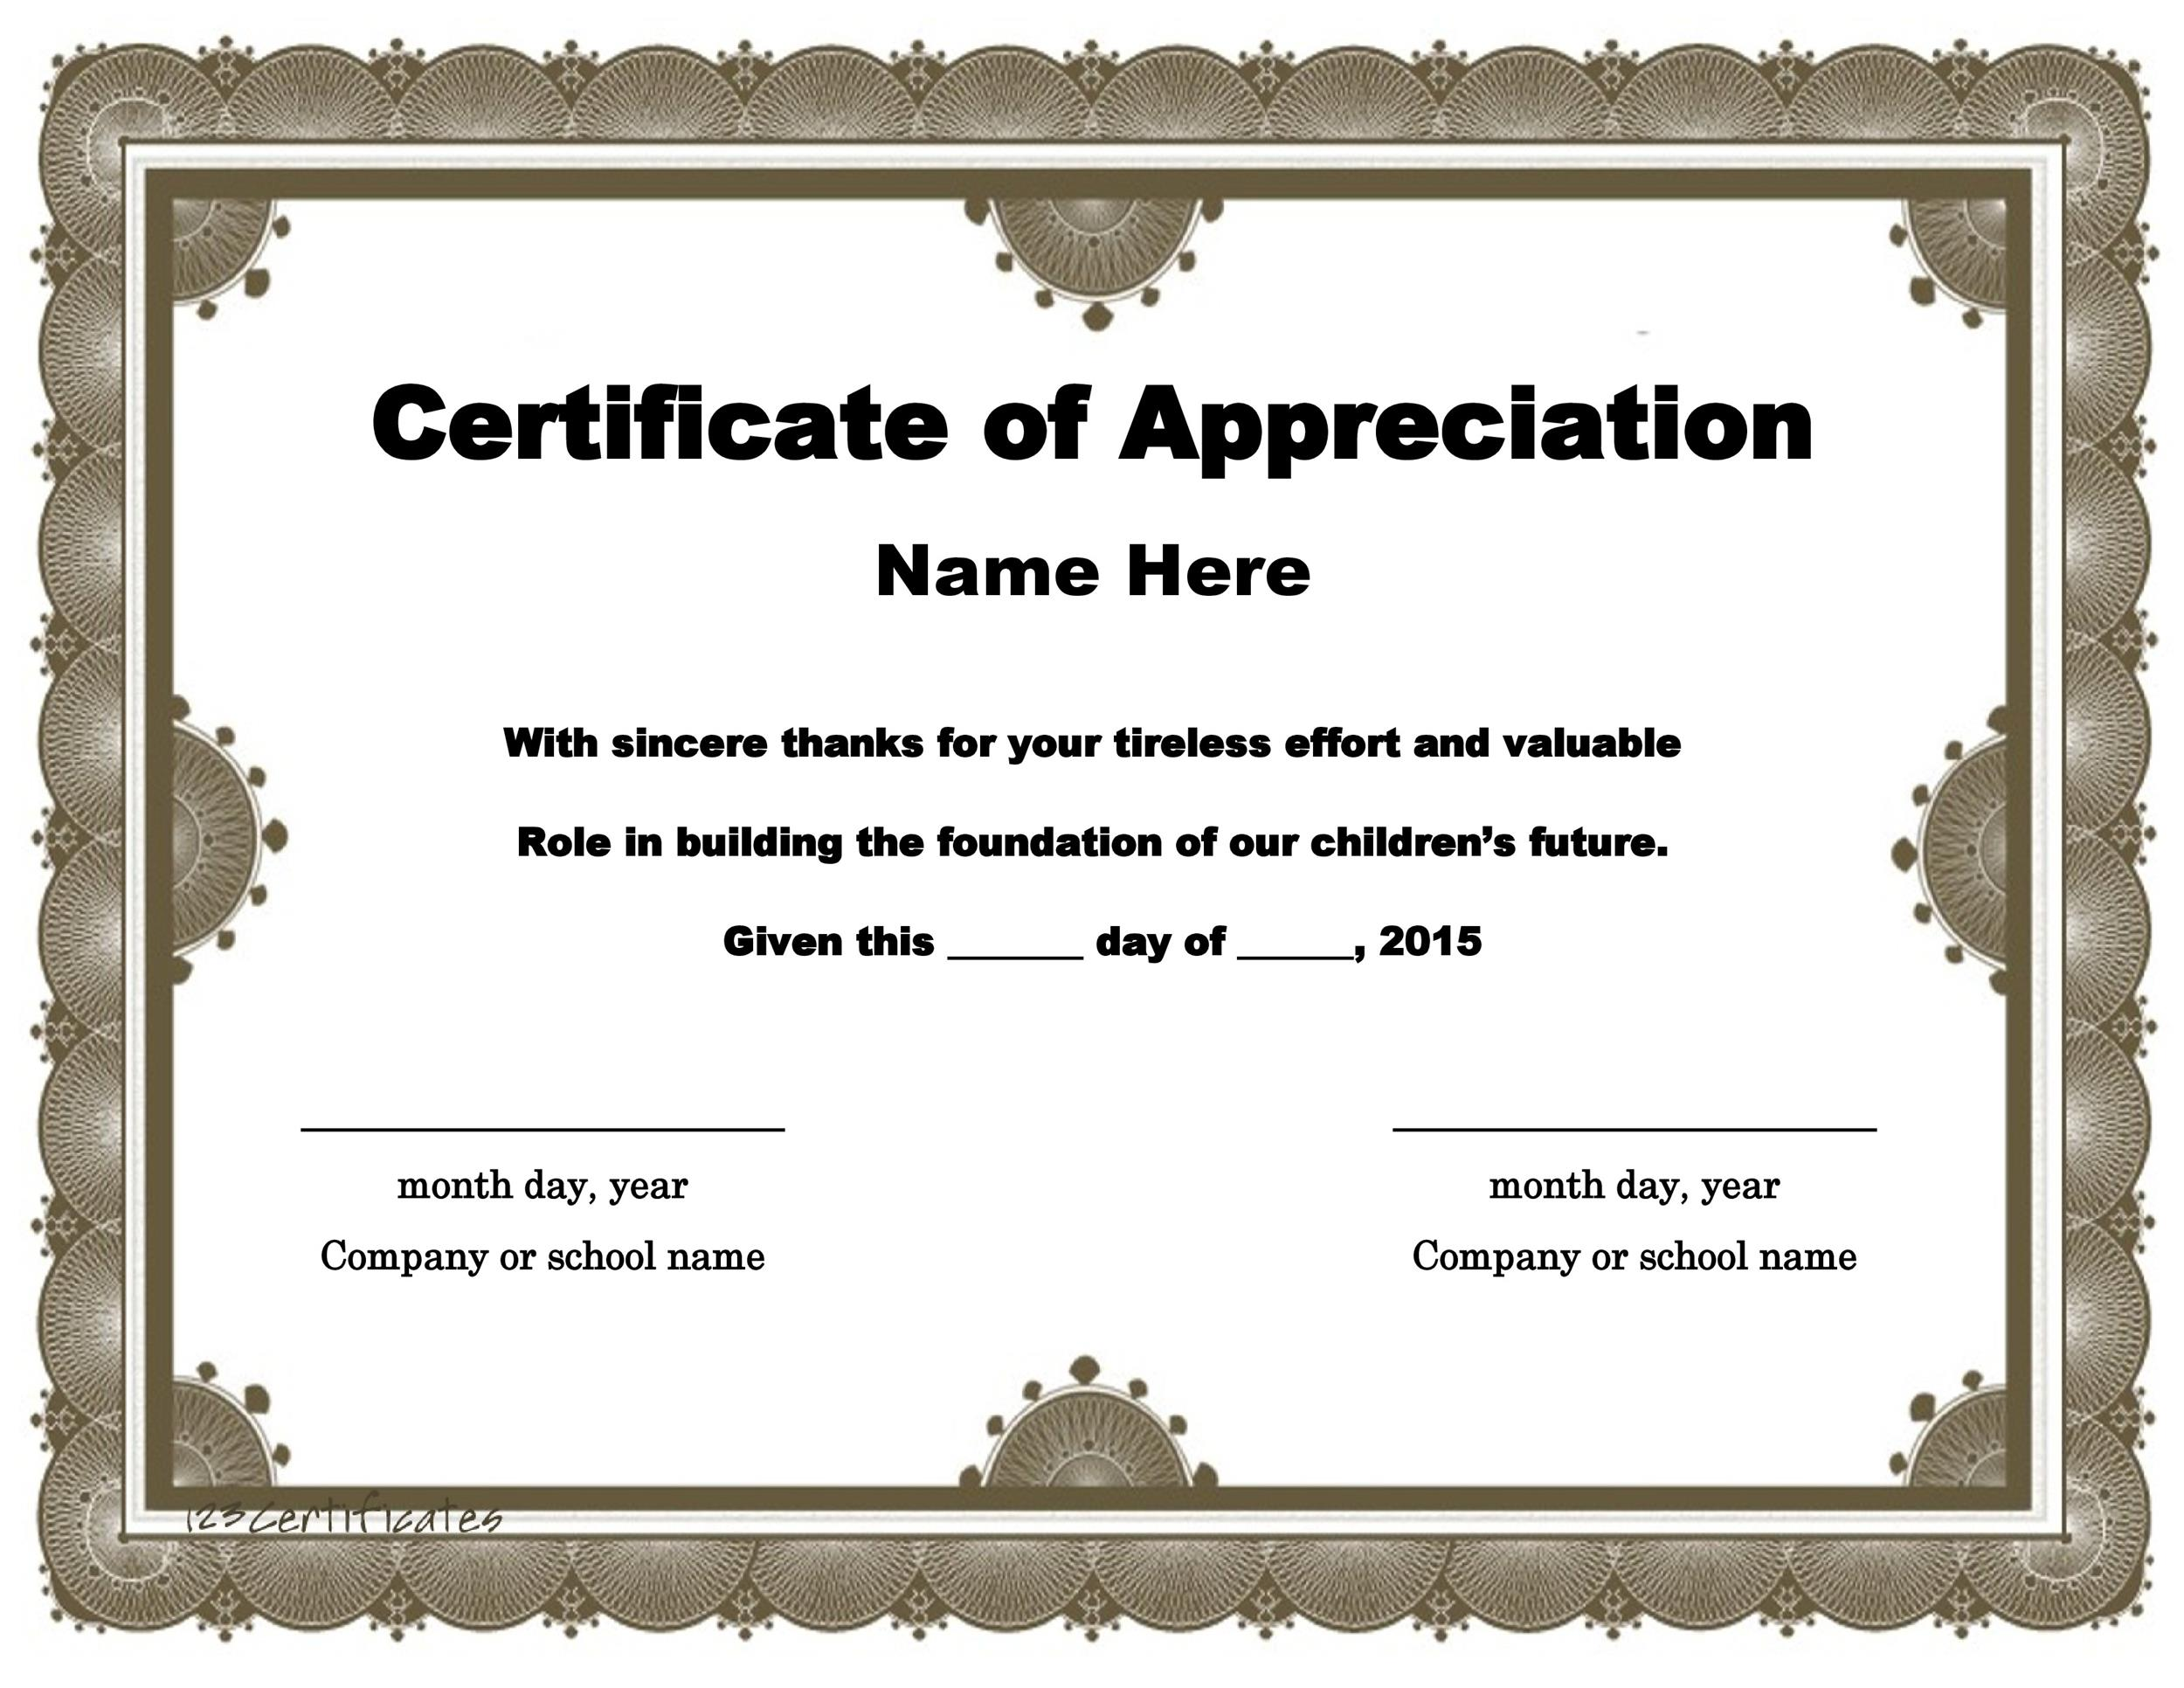 30 free certificate of appreciation templates and letters printable certificate of appreciation 03 yelopaper